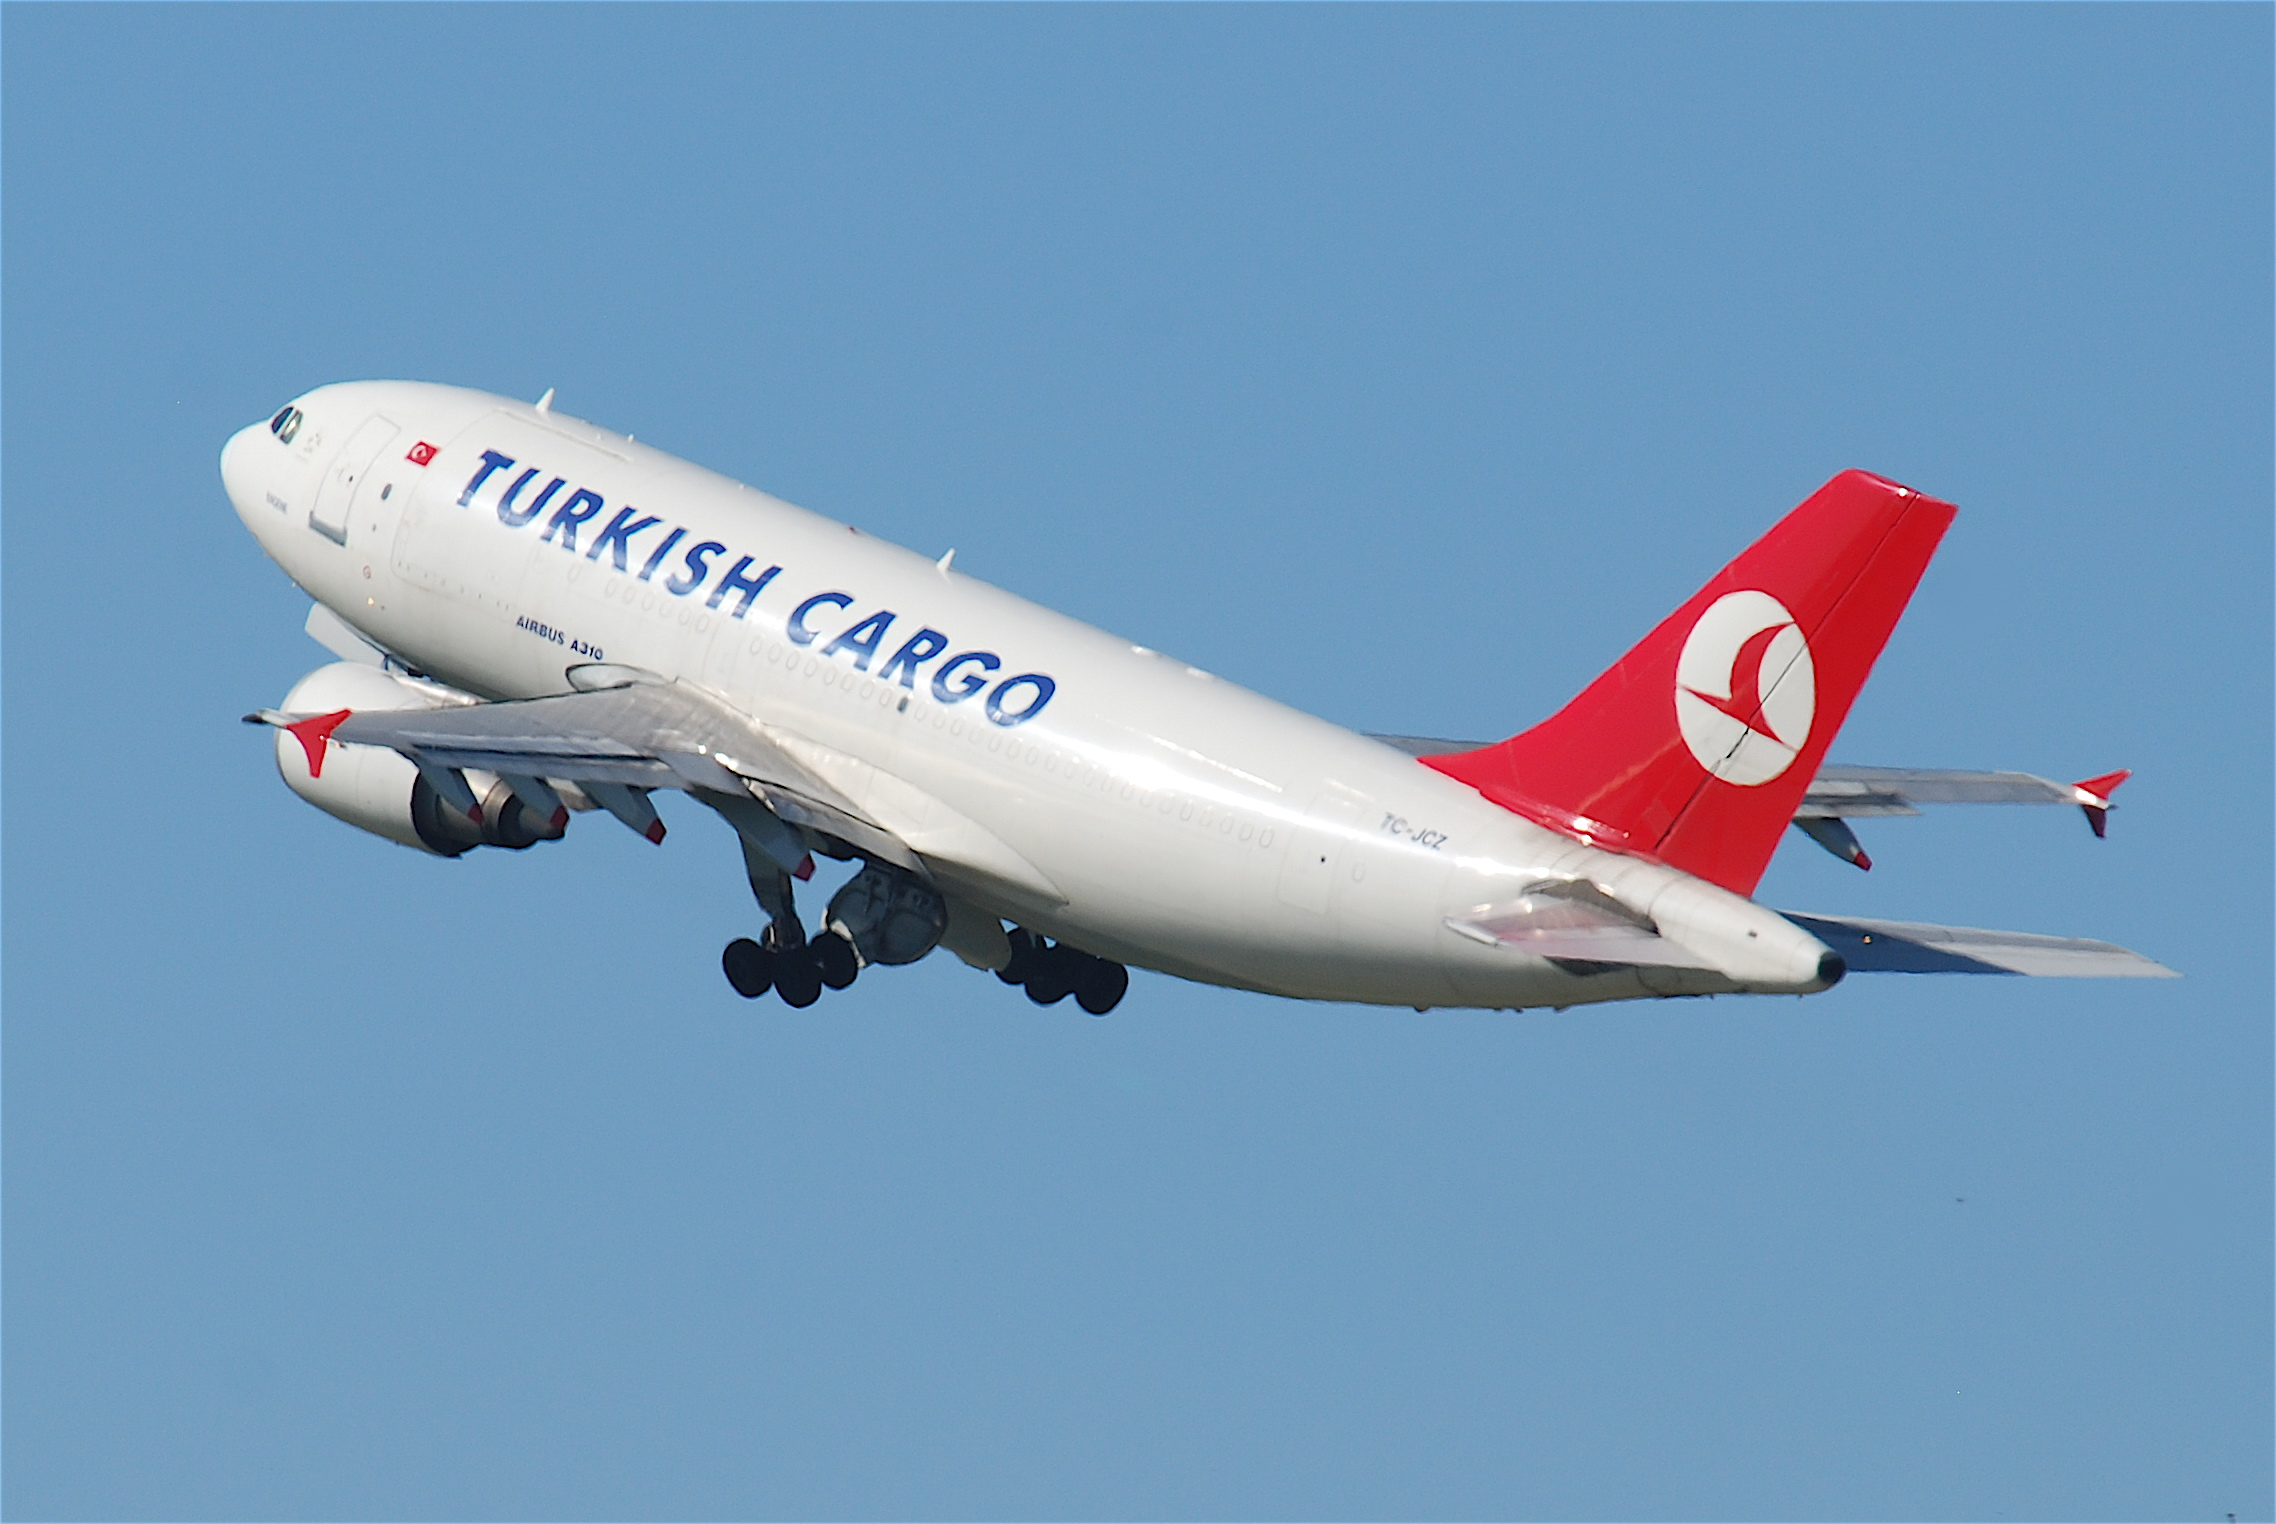 turkish airlines The country's flag carrier, turkish airlines (tk) was founded in 1933 the airline flies to 280 airports in 110 countries in europe, asia, the middle east, africa.